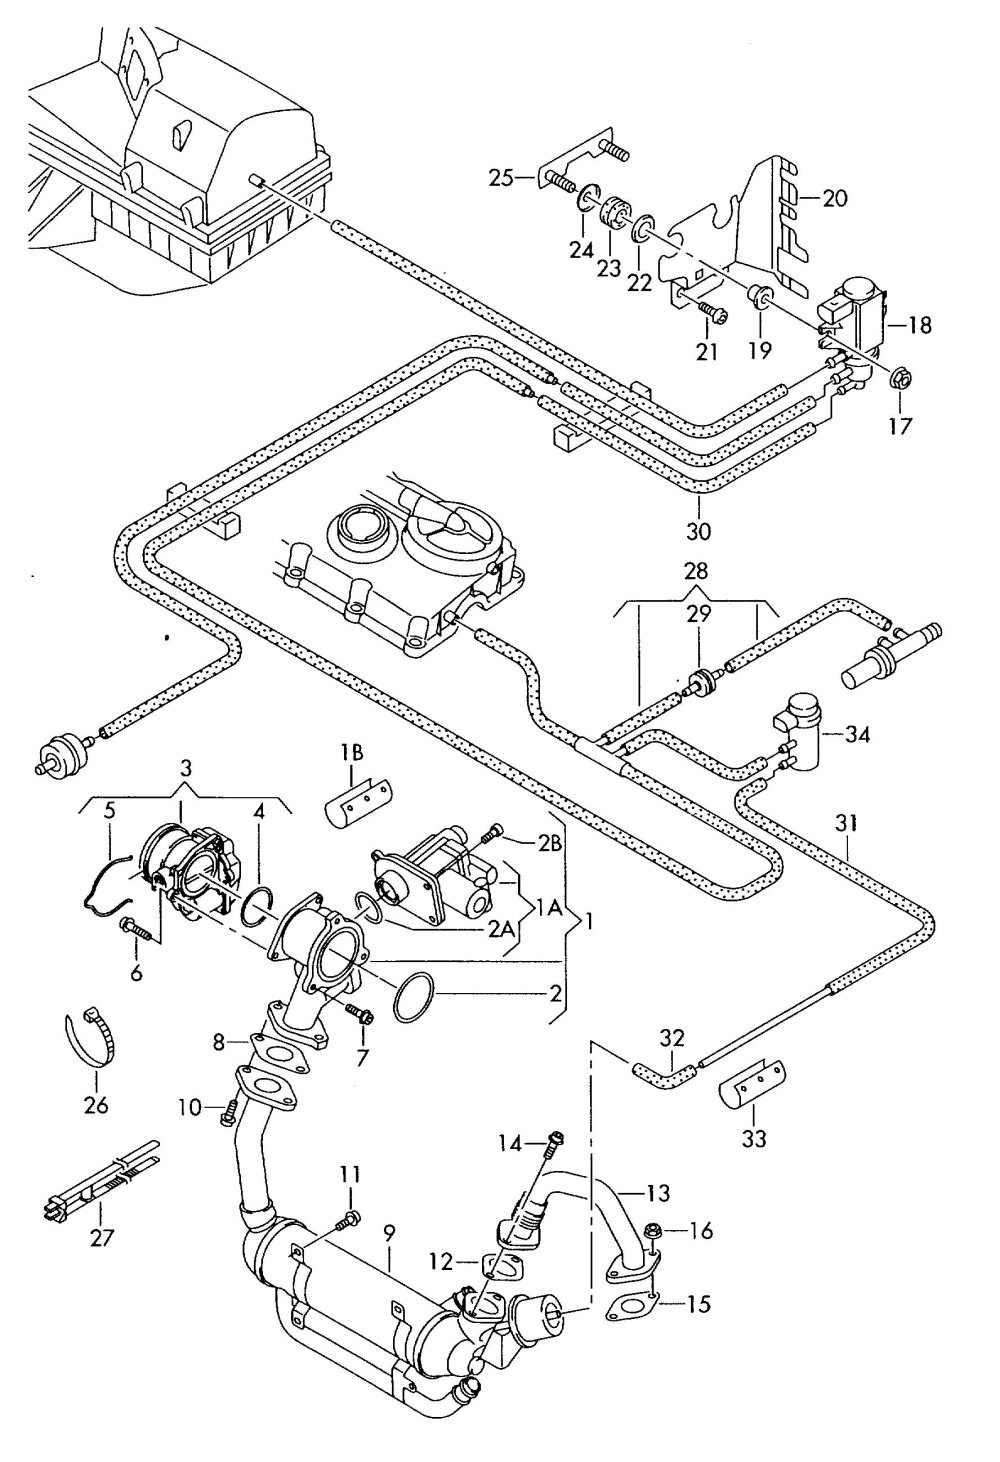 medium resolution of  here s a schematic for the egr system on the brm